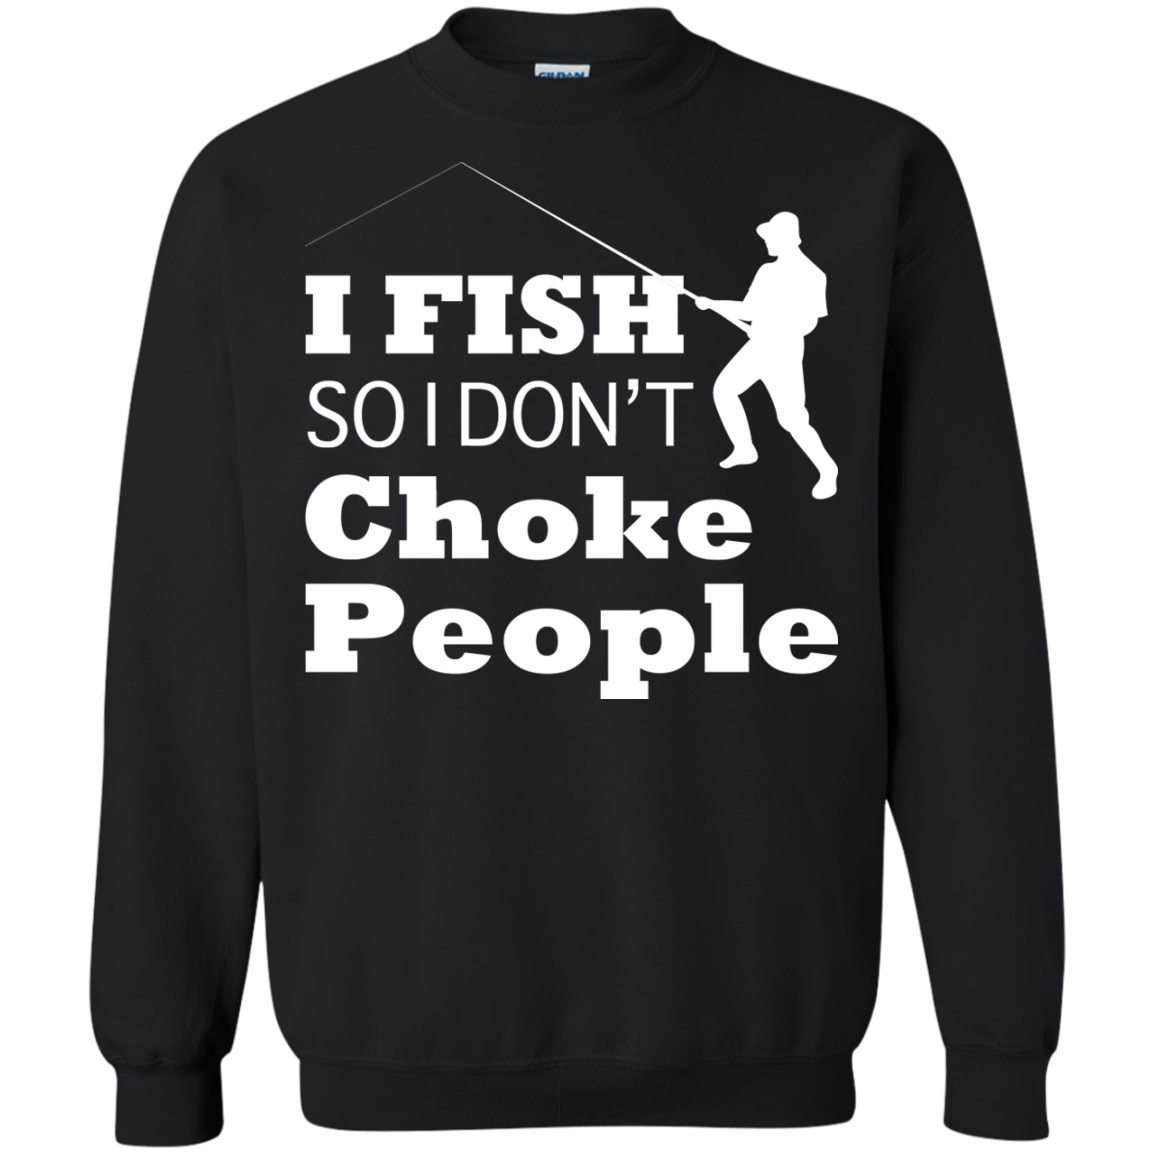 I Fish So I Dont Choke People Sweatshirts